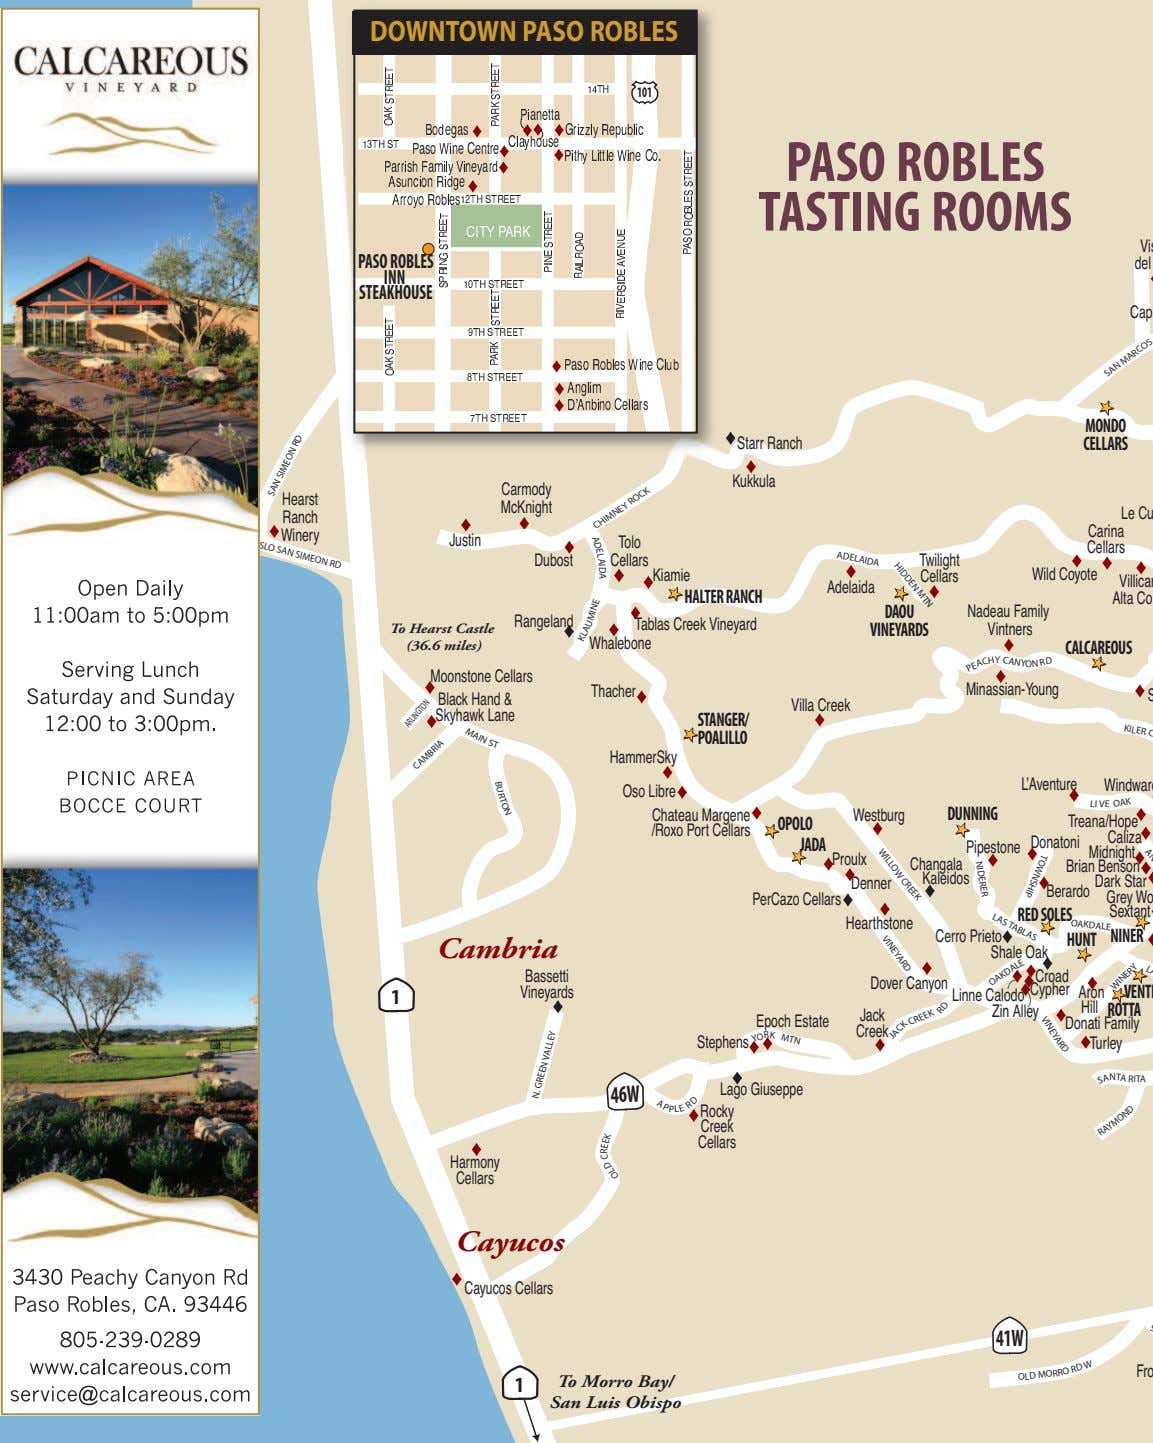 DOWNTOWN PASO ROBLES 101 A HIDDEN MTN PASO ROBLES TASTING ROOMS Vi PASOROBLES del INN